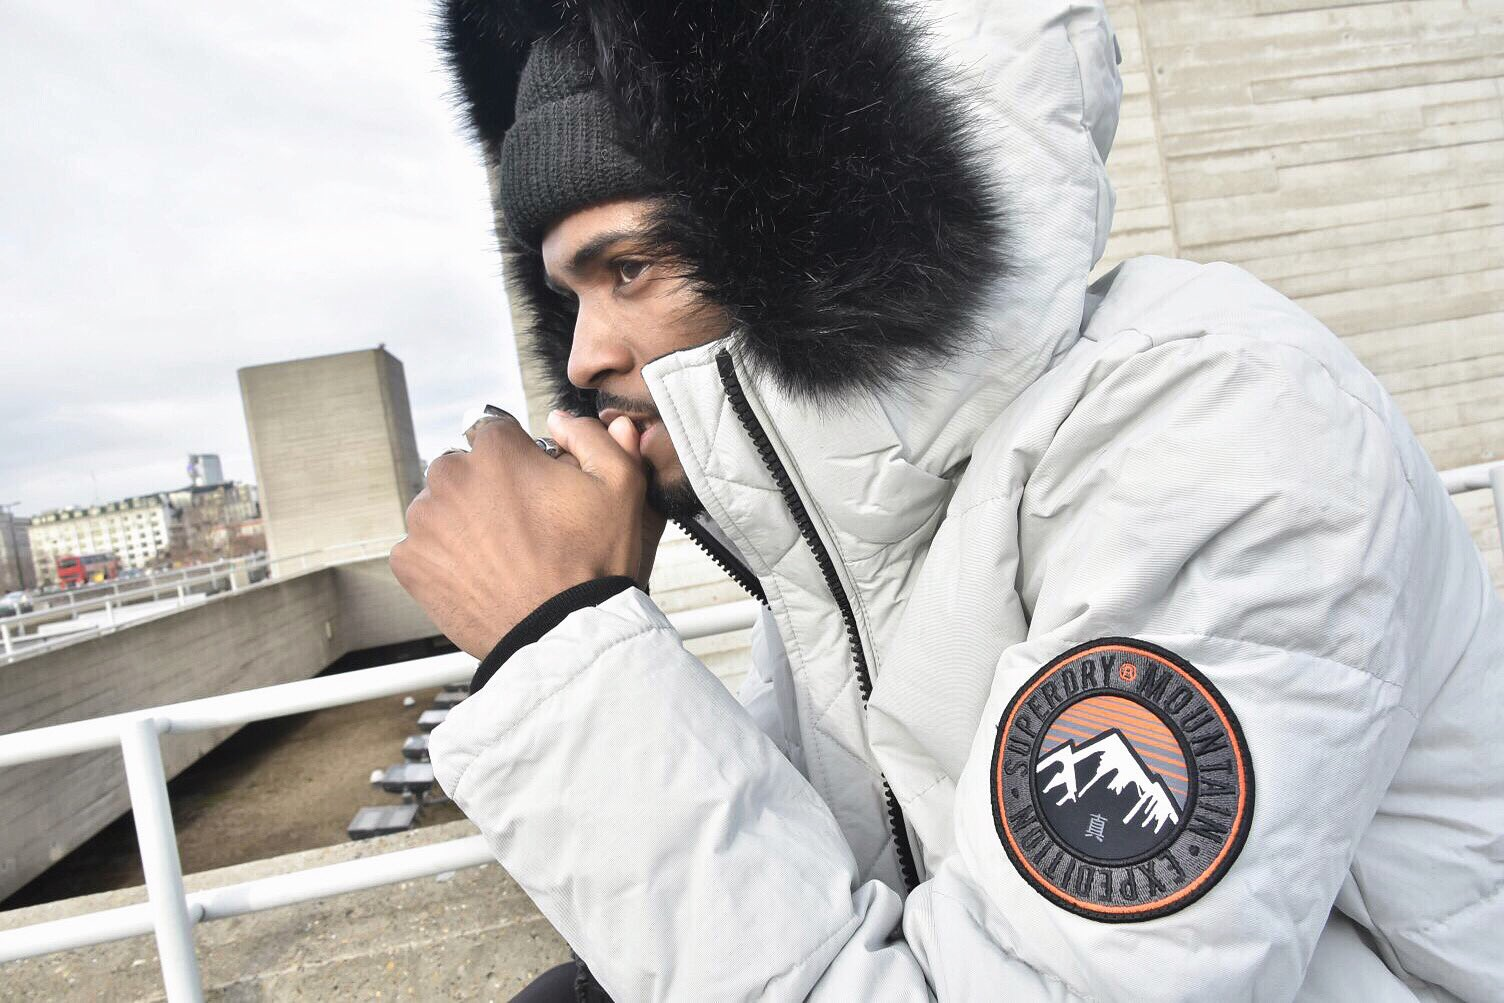 Getting cold out here guys make sure you wrap up warm with some @Superdry #superdry #superdrylondon https://t.co/ztBhV4kGPy